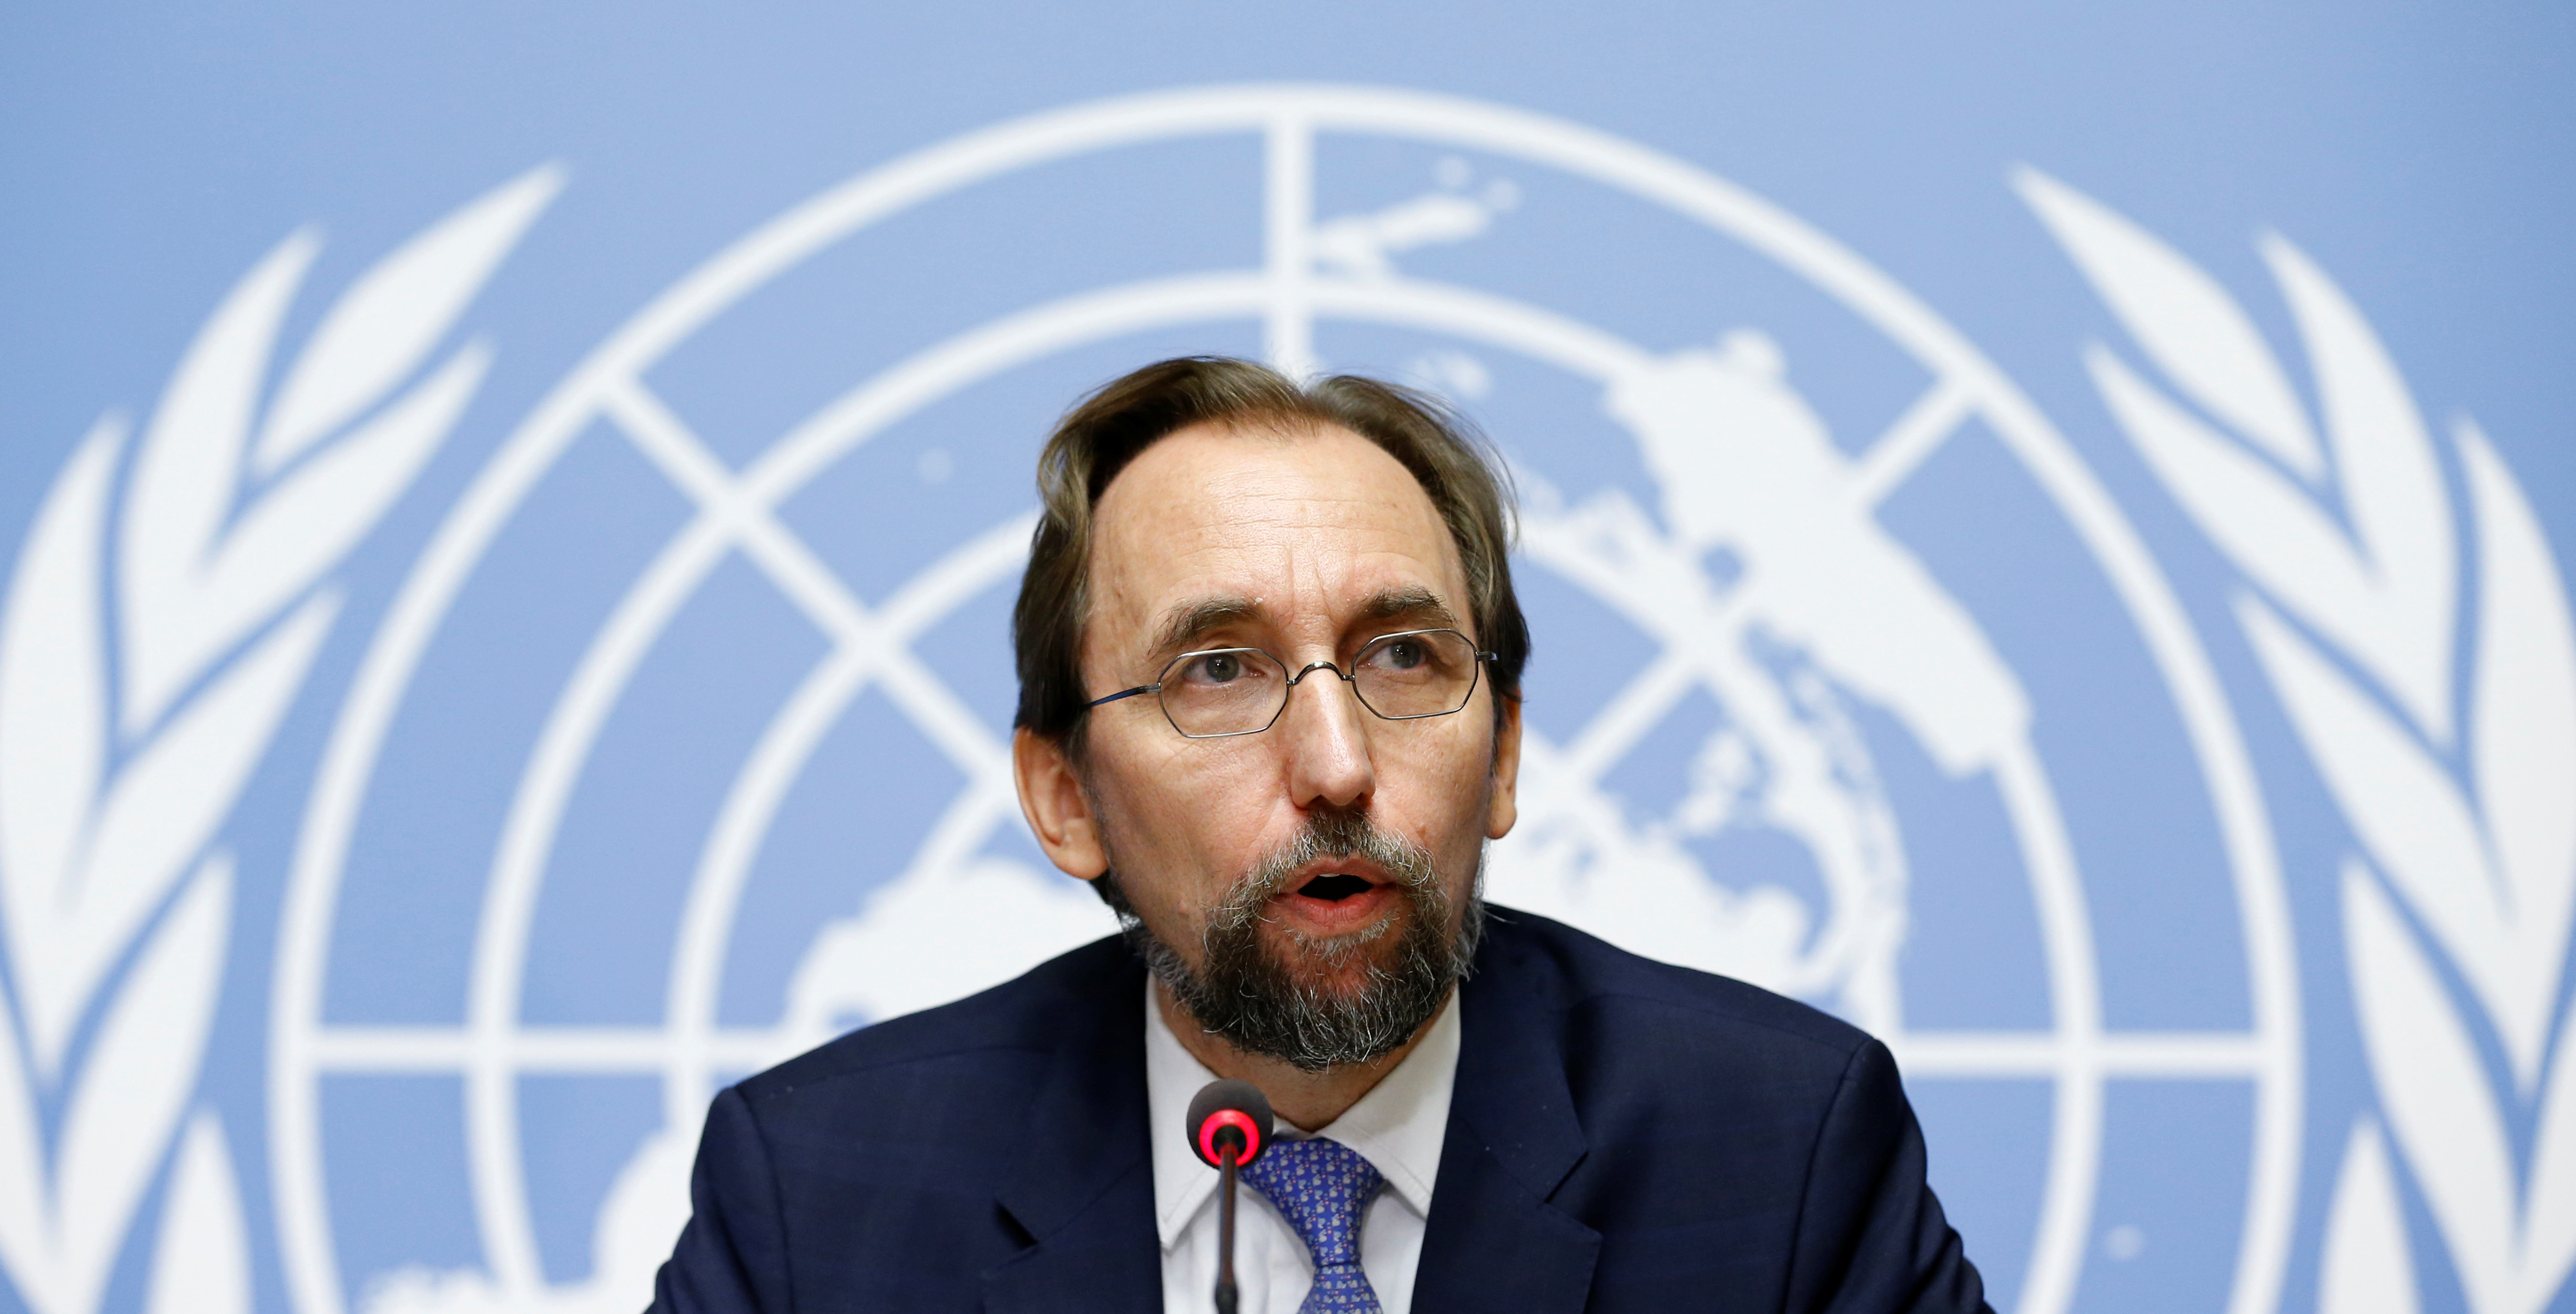 Zeid Ra'ad Al Hussein, U.N. High Commissioner for Human Rights attends a news conference on Venezuela at the United Nations Office in Geneva, Switzerland August 30, 2017. REUTERS/Denis Balibouse